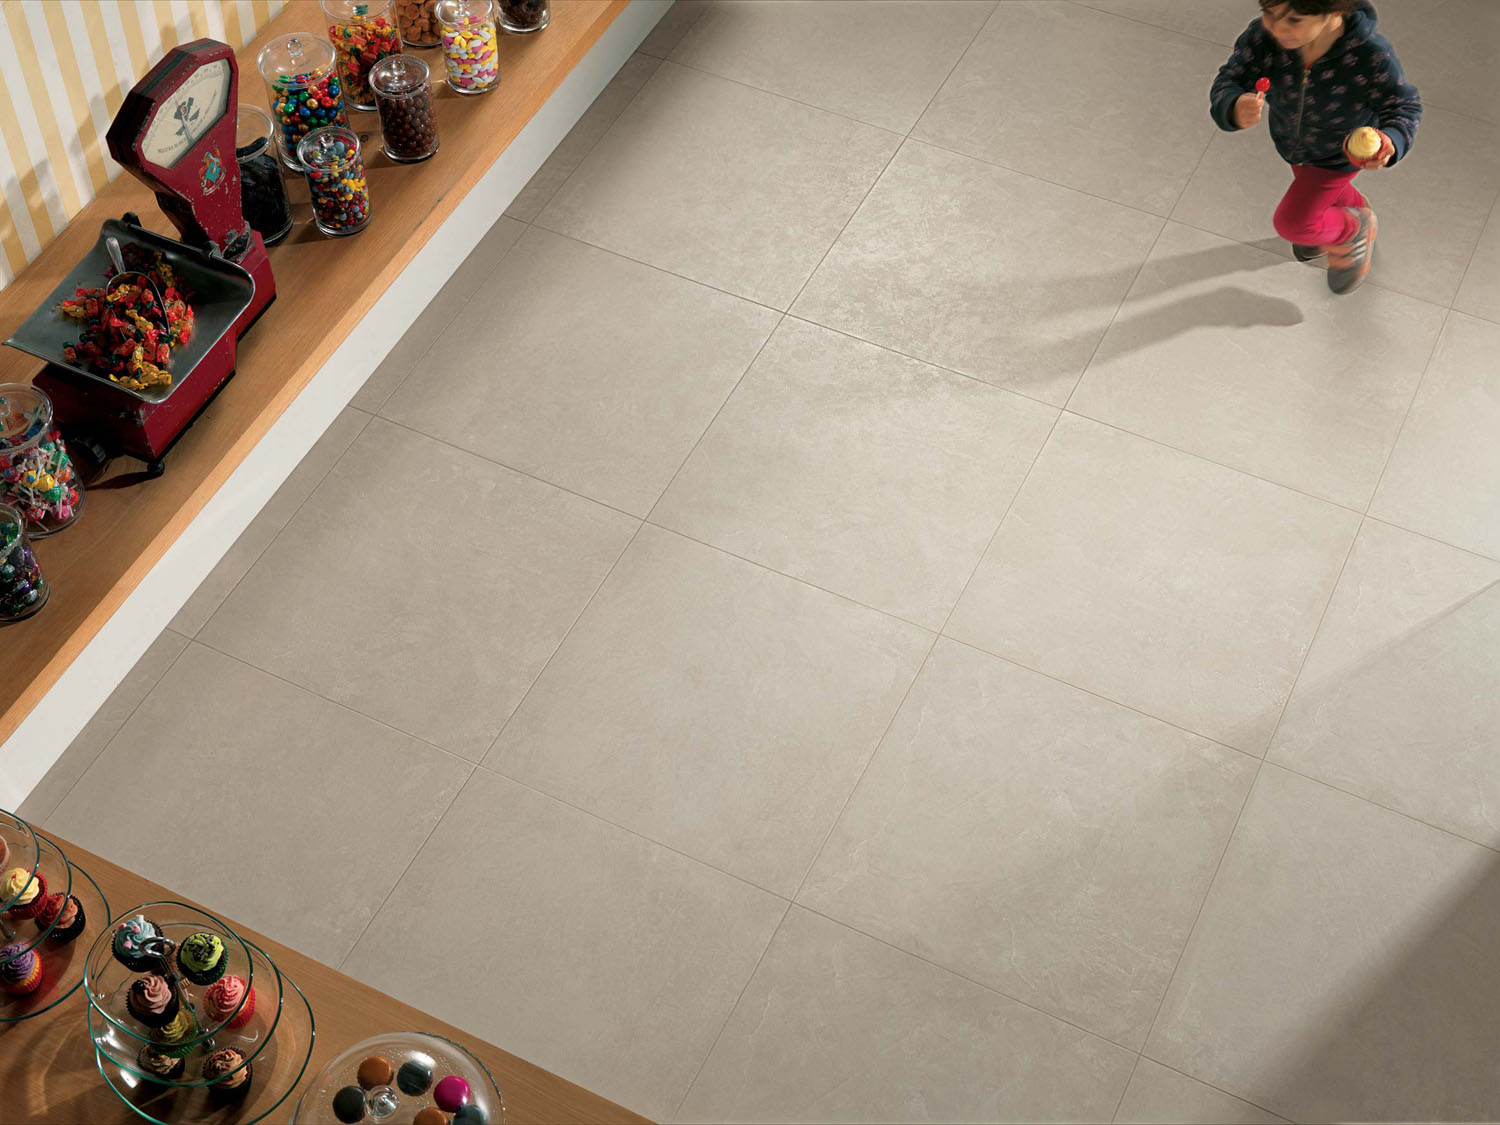 Which size for Ceramic Tiles? Which size for wall and floor tiles?